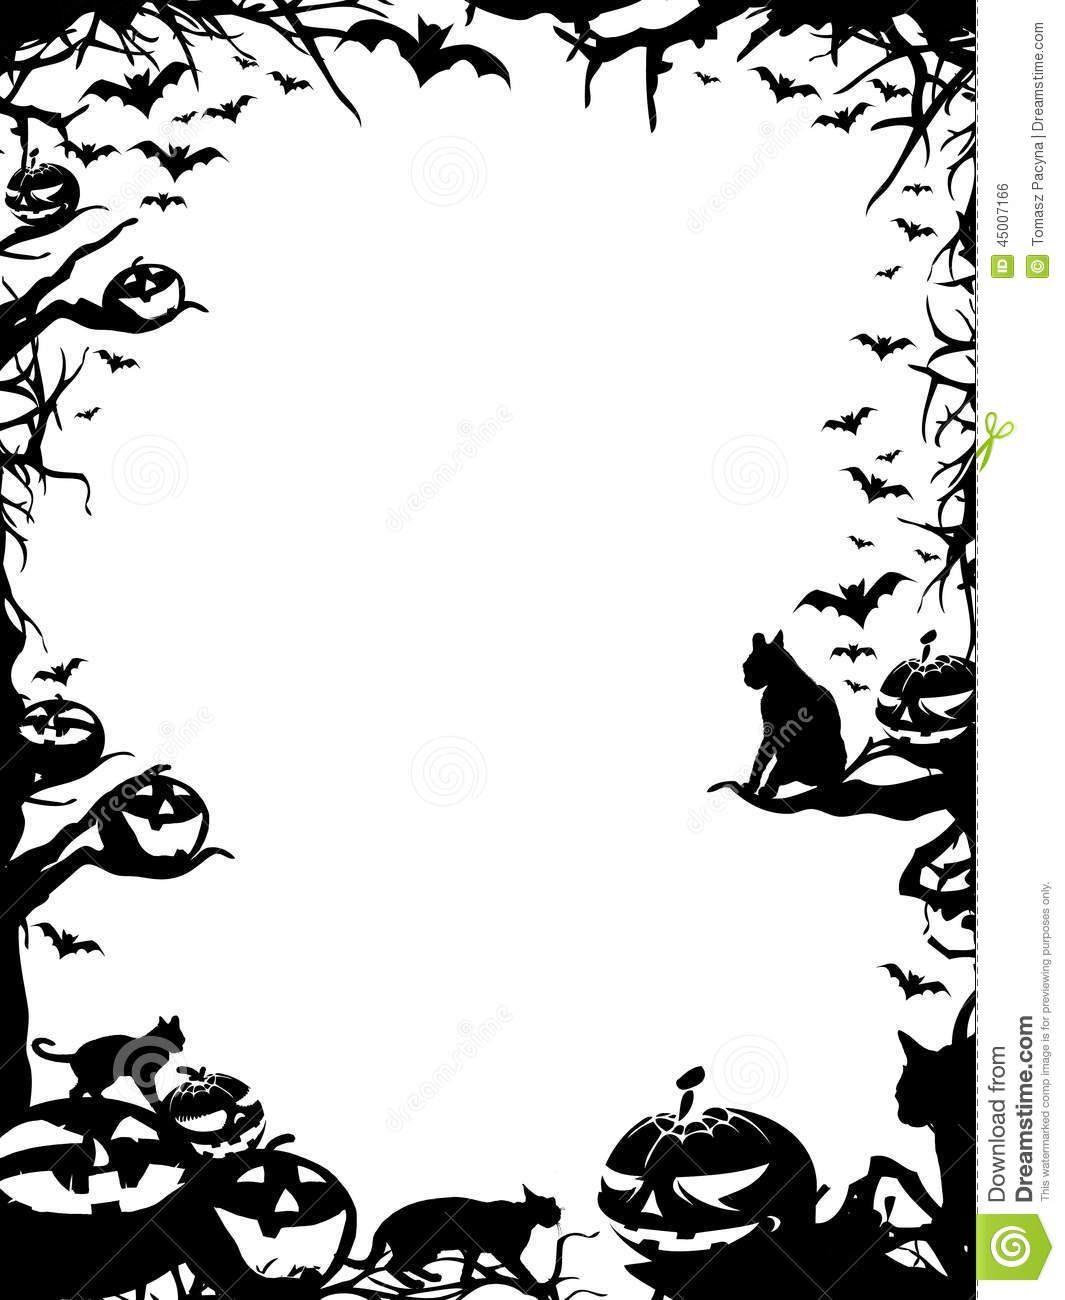 Black And White Halloween Borders (6) in 2019.